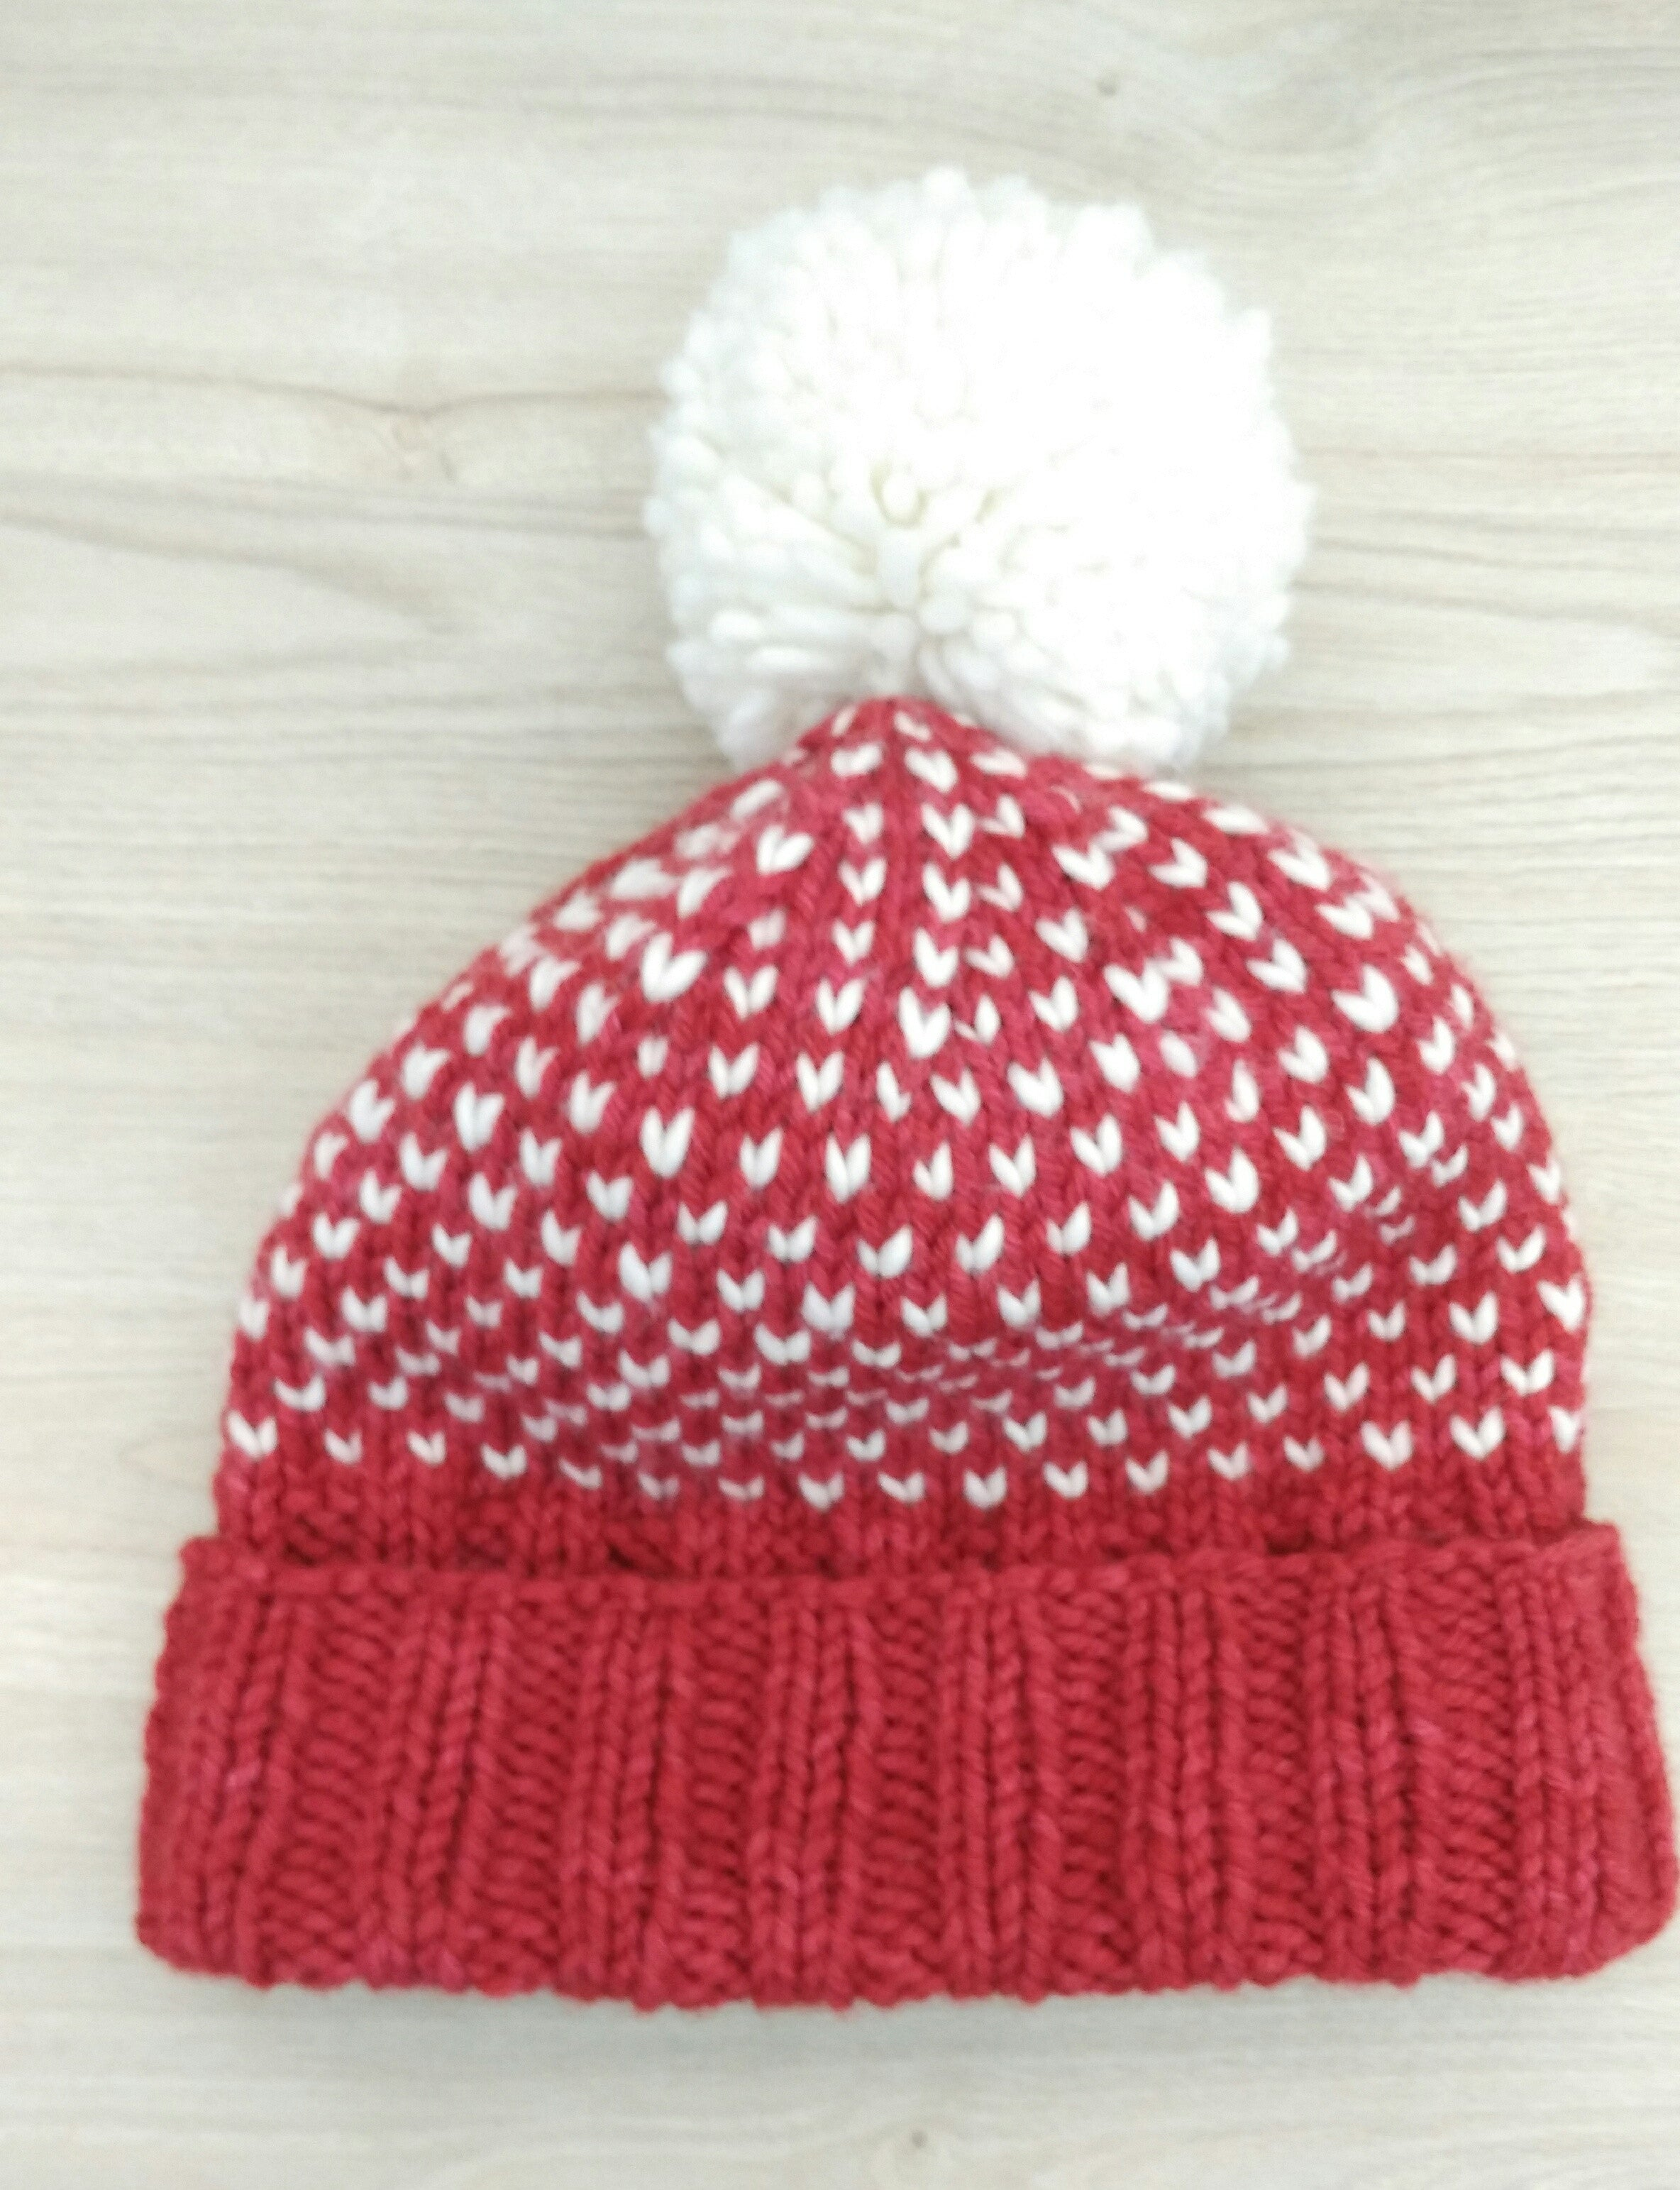 Guided Craft Project-Knit a Simple Fair Isle Beanie